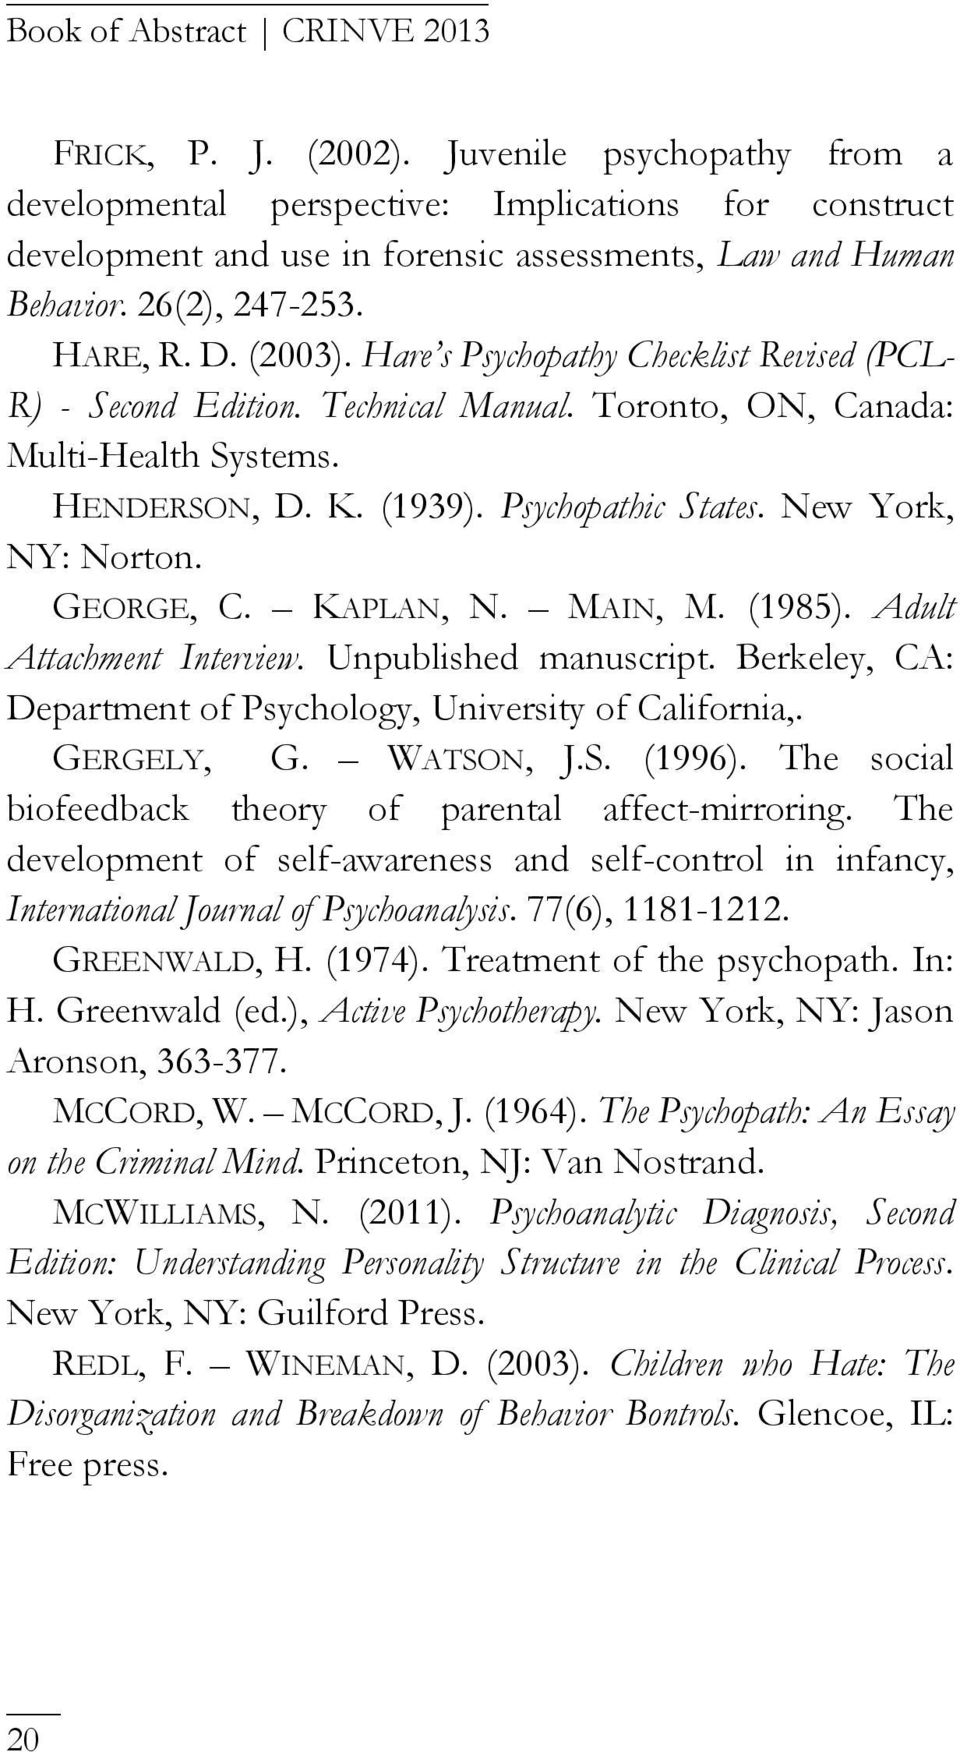 GEORGE, C. KAPLAN, N. MAIN, M. (1985). Adult Attachment Interview. Unpublished manuscript. Berkeley, CA: Department of Psychology, University of California,. GERGELY, G. WATSON, J.S. (1996).